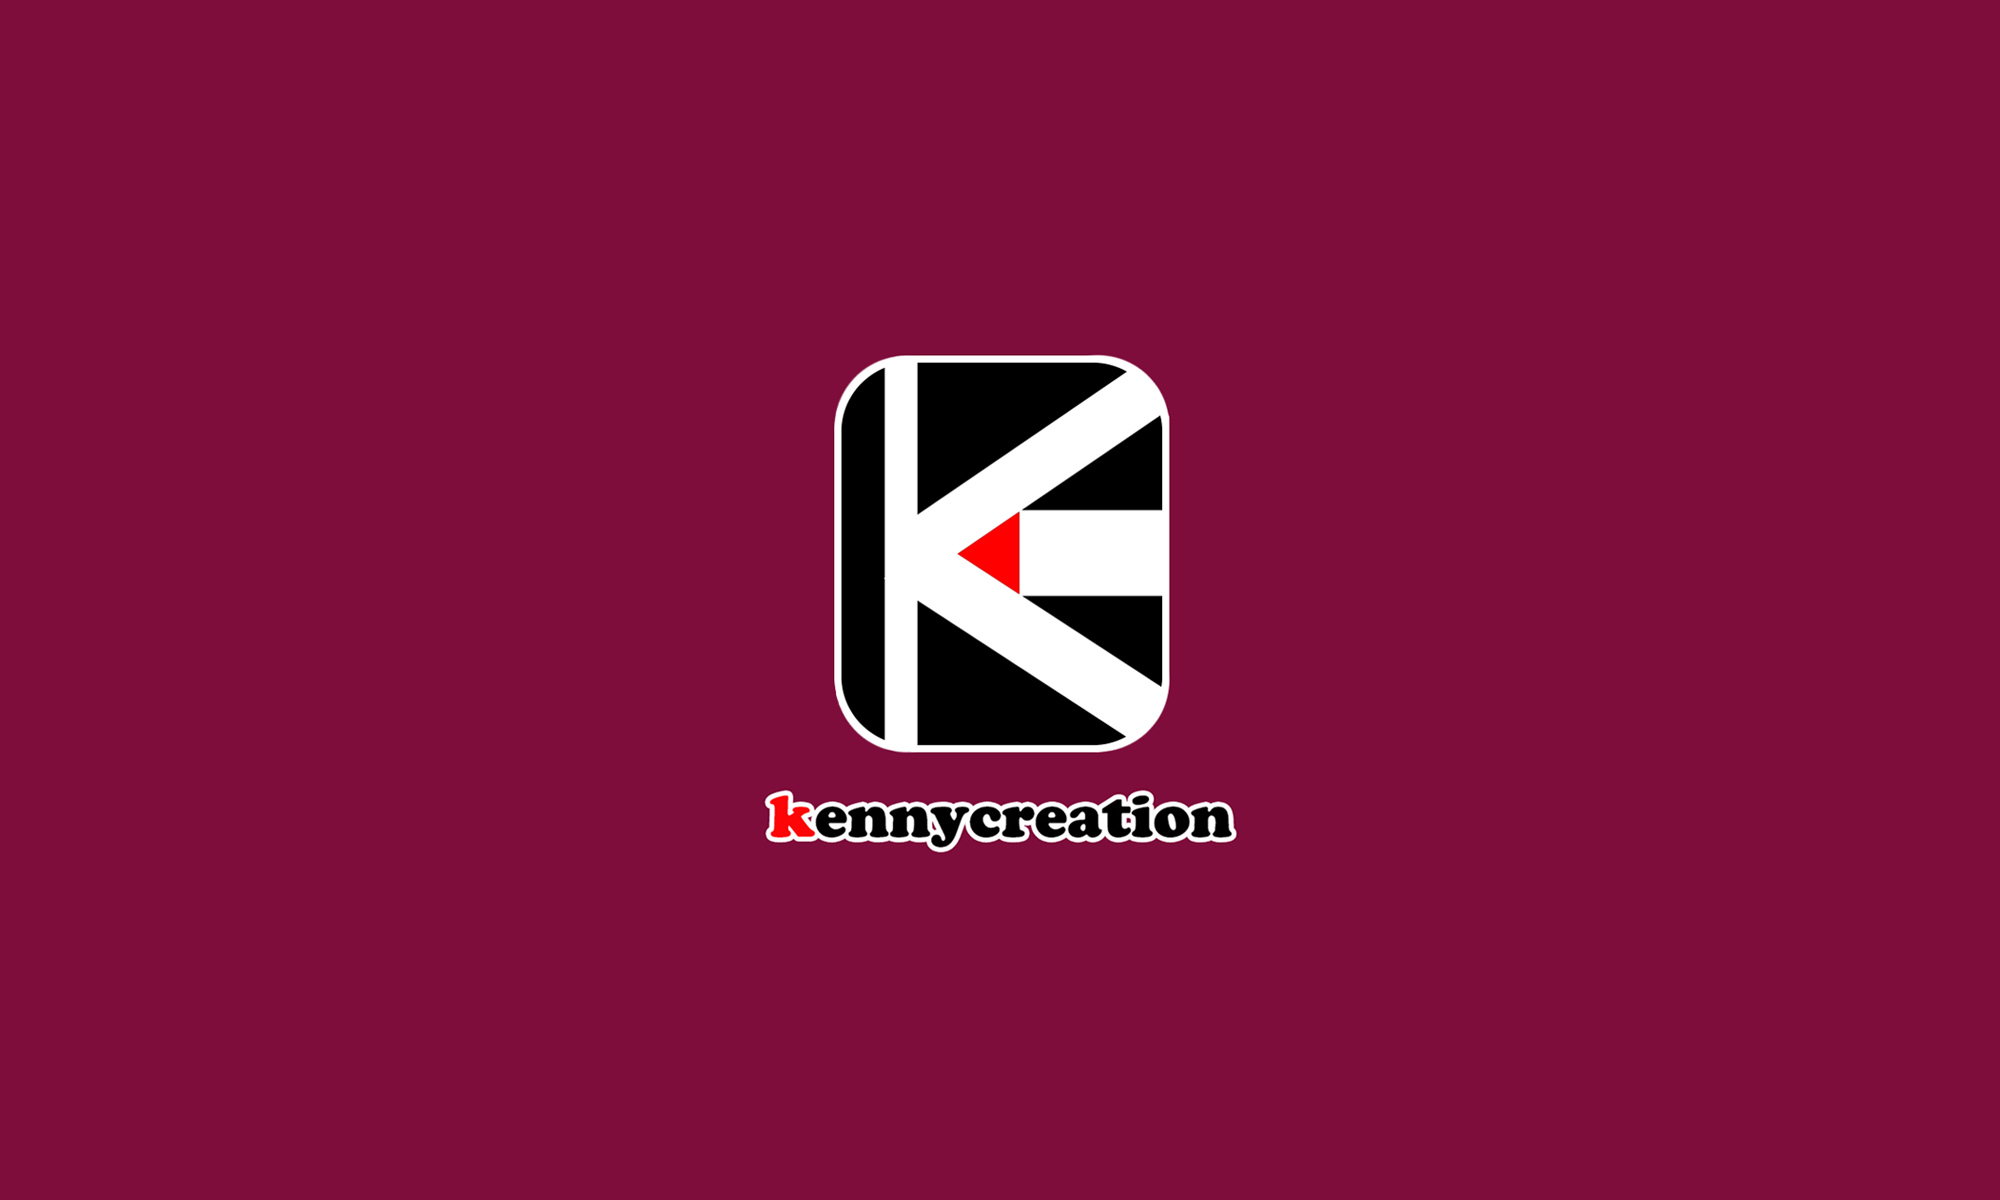 kennycreation